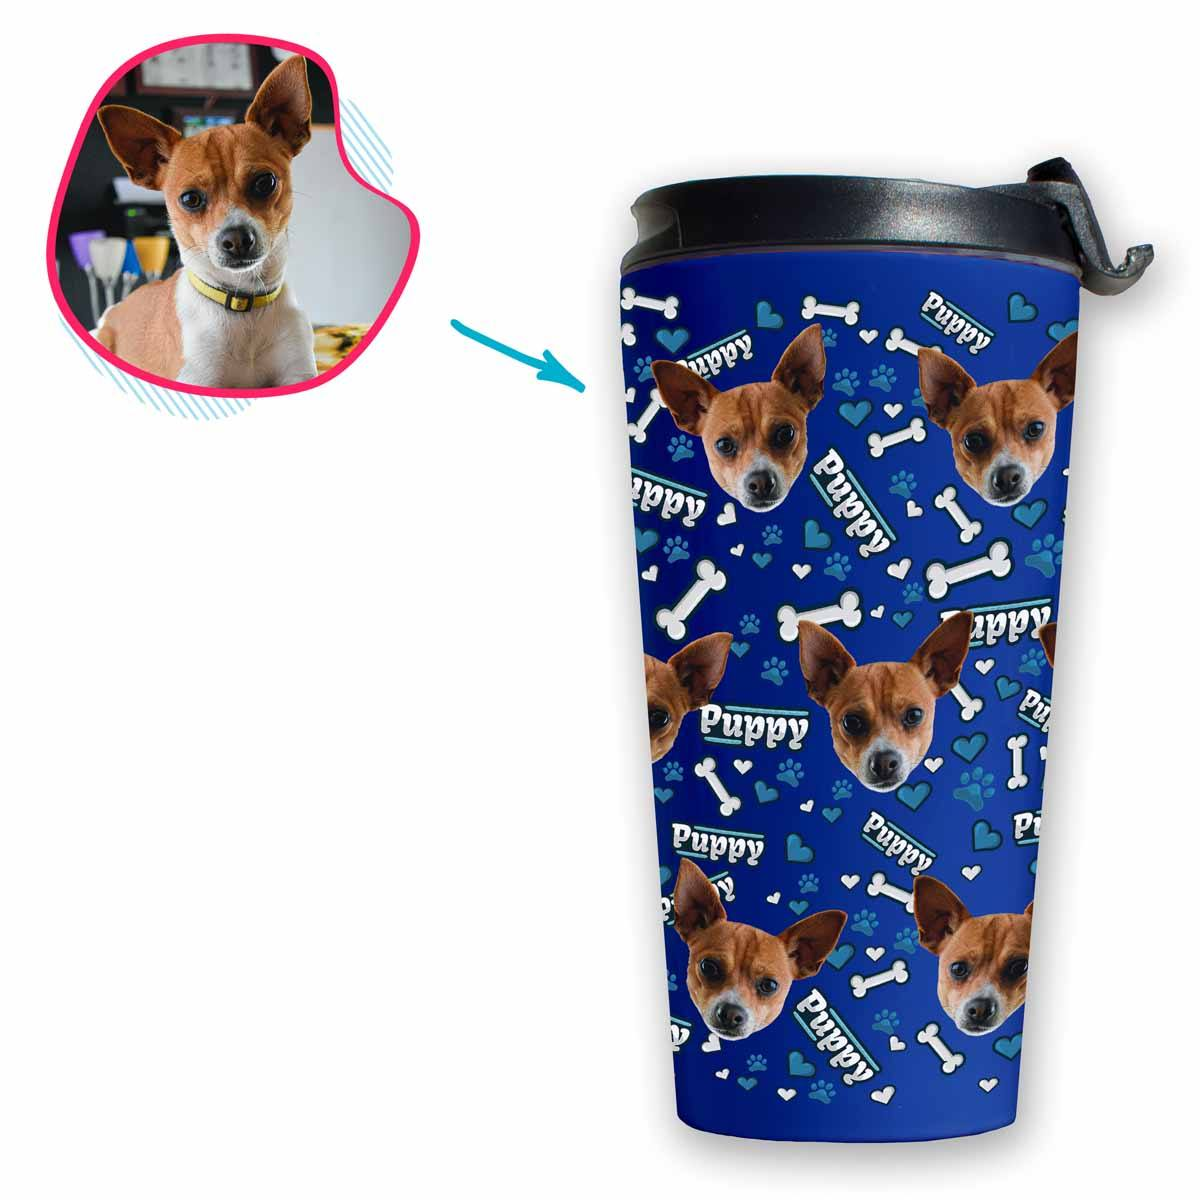 darkblue Puppy travel mug personalized with photo of face printed on it